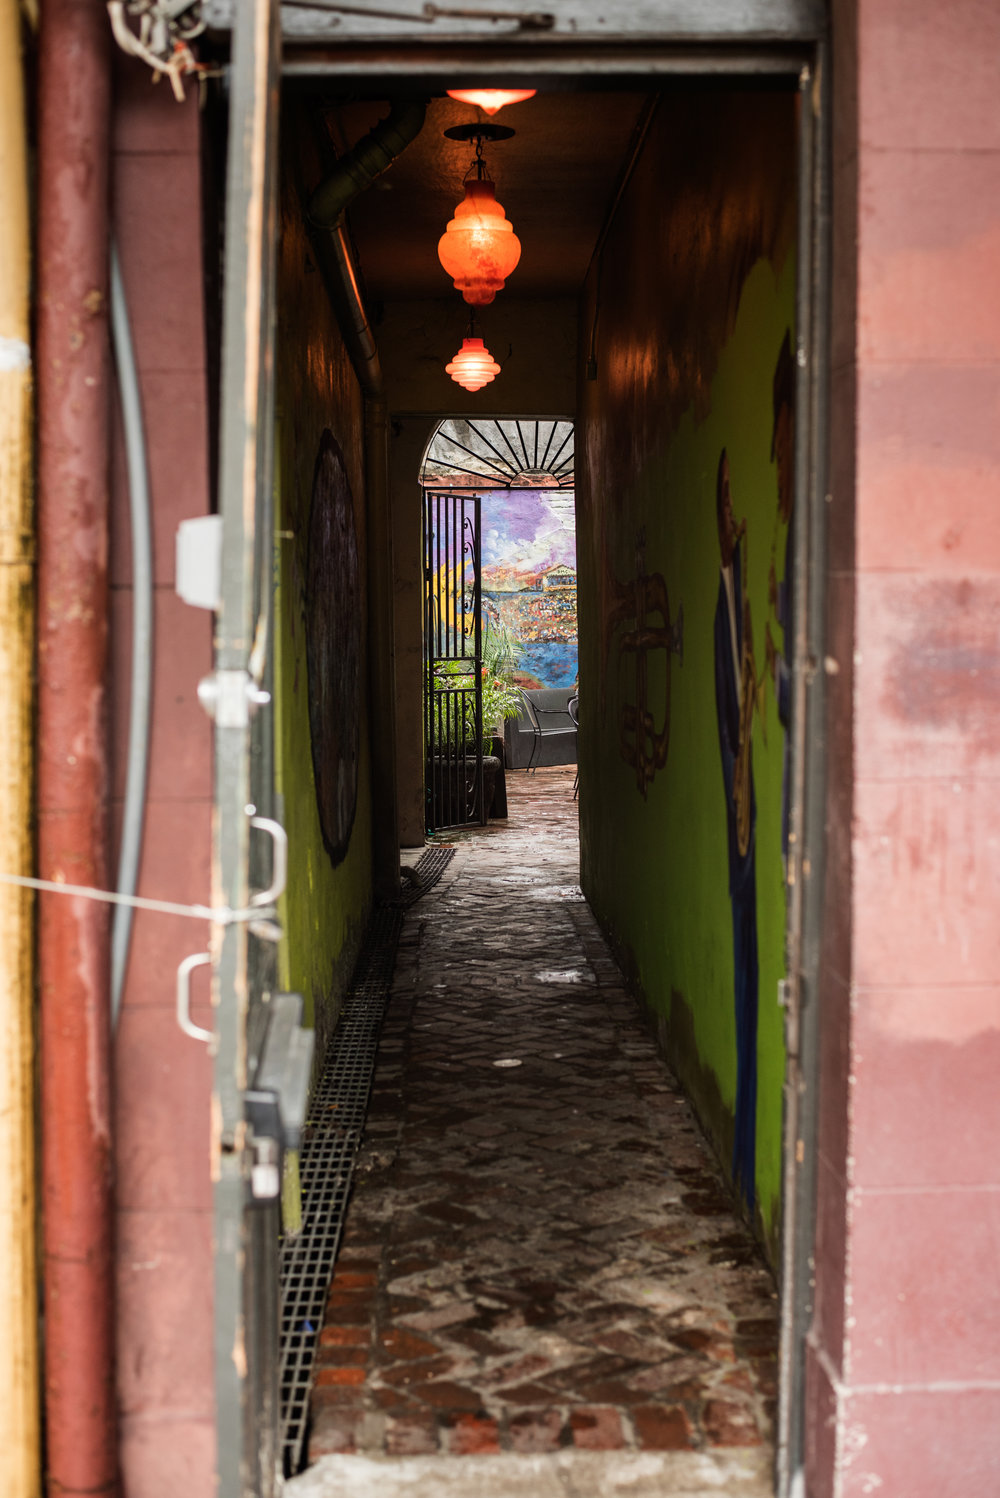 20180525-colorful-alley_42535045881_o-redux.jpg